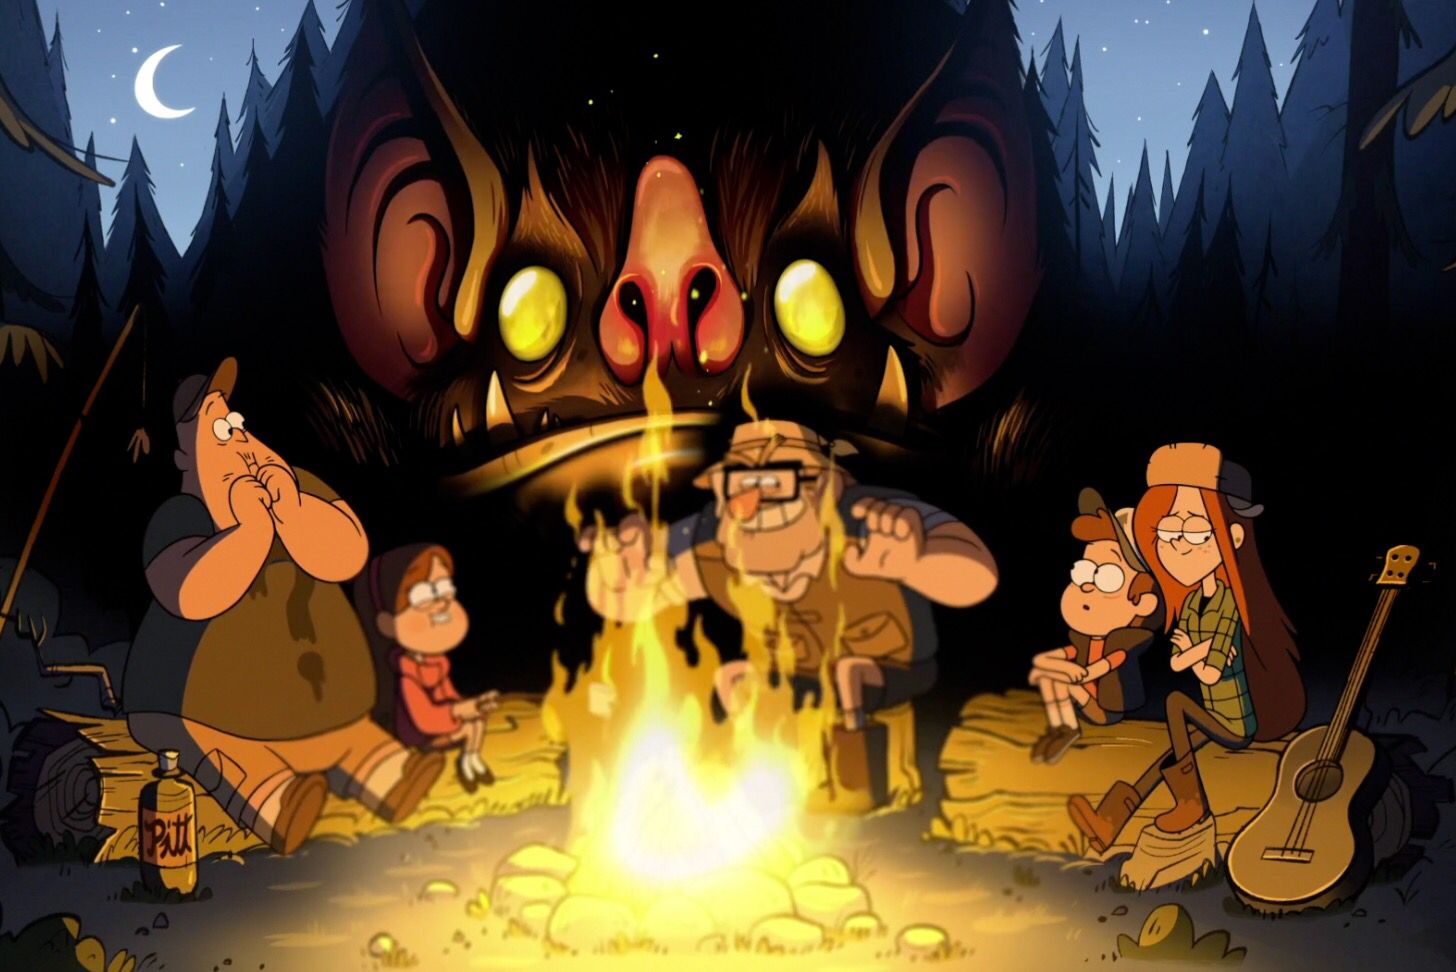 Campfire snapshot from the Gravity Falls theme song